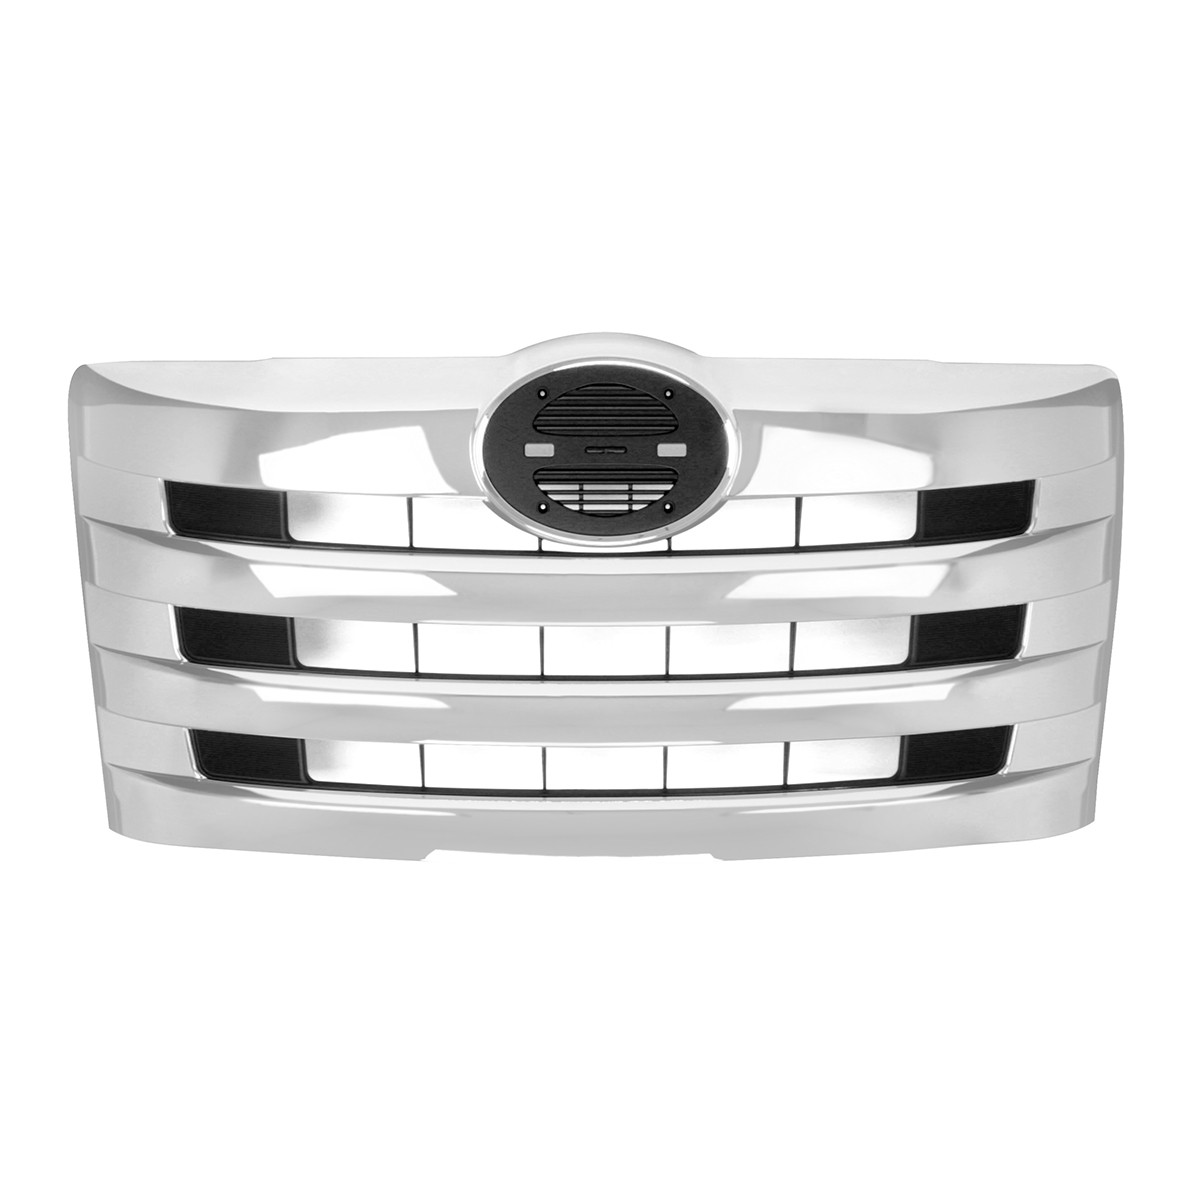 89331 Chrome Plastic Grille for Hino 238 Model for Year 2011+